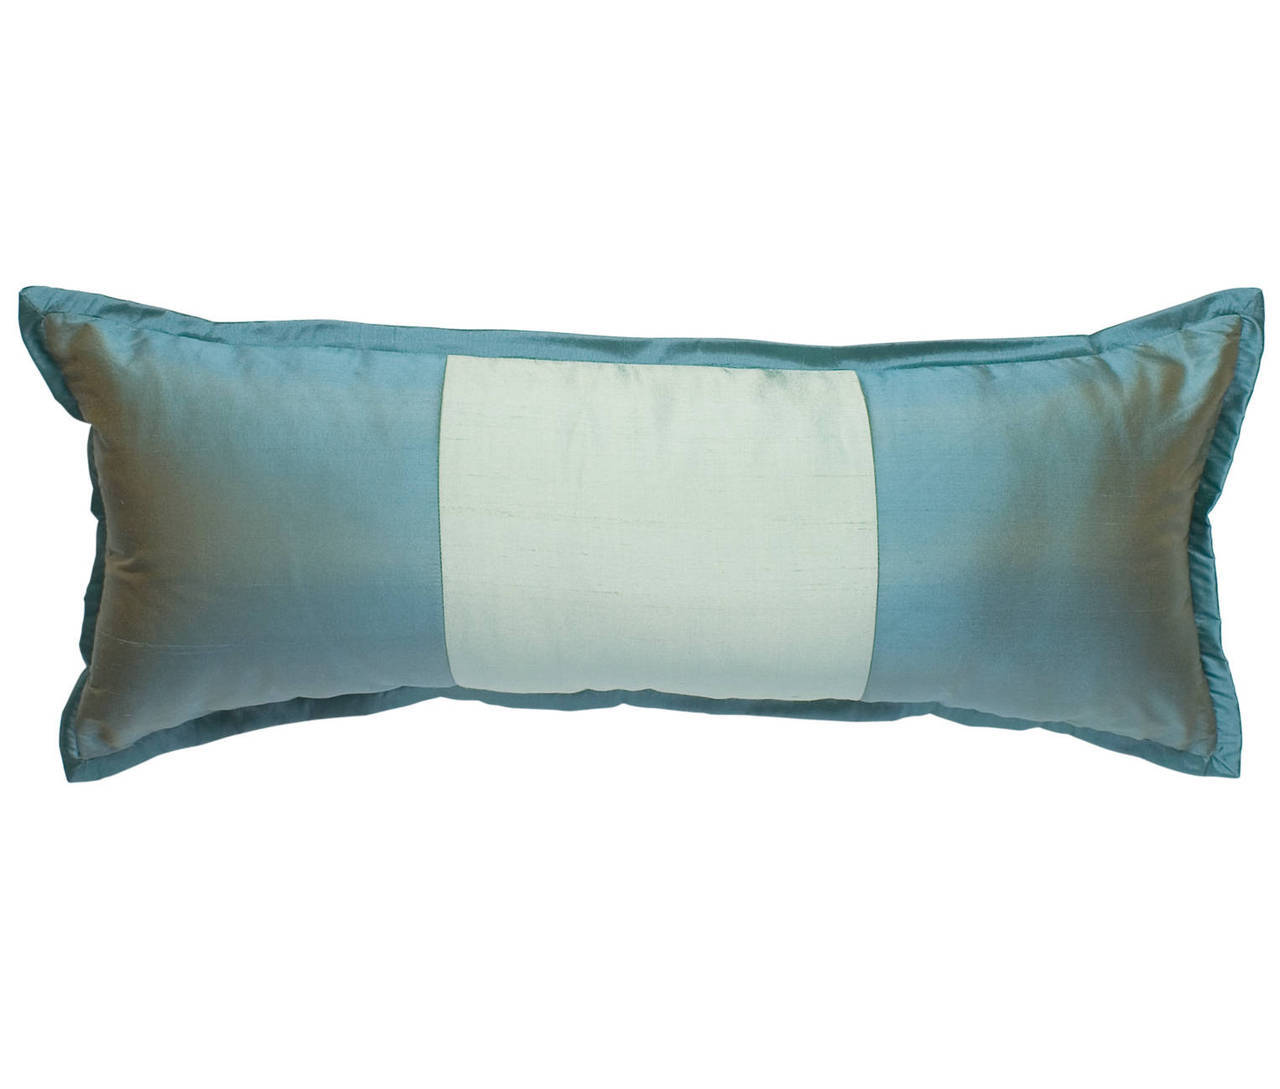 Profiles Silk Turquoise Large Boudoir Pillow Mystic Valley Traders - unique linens online